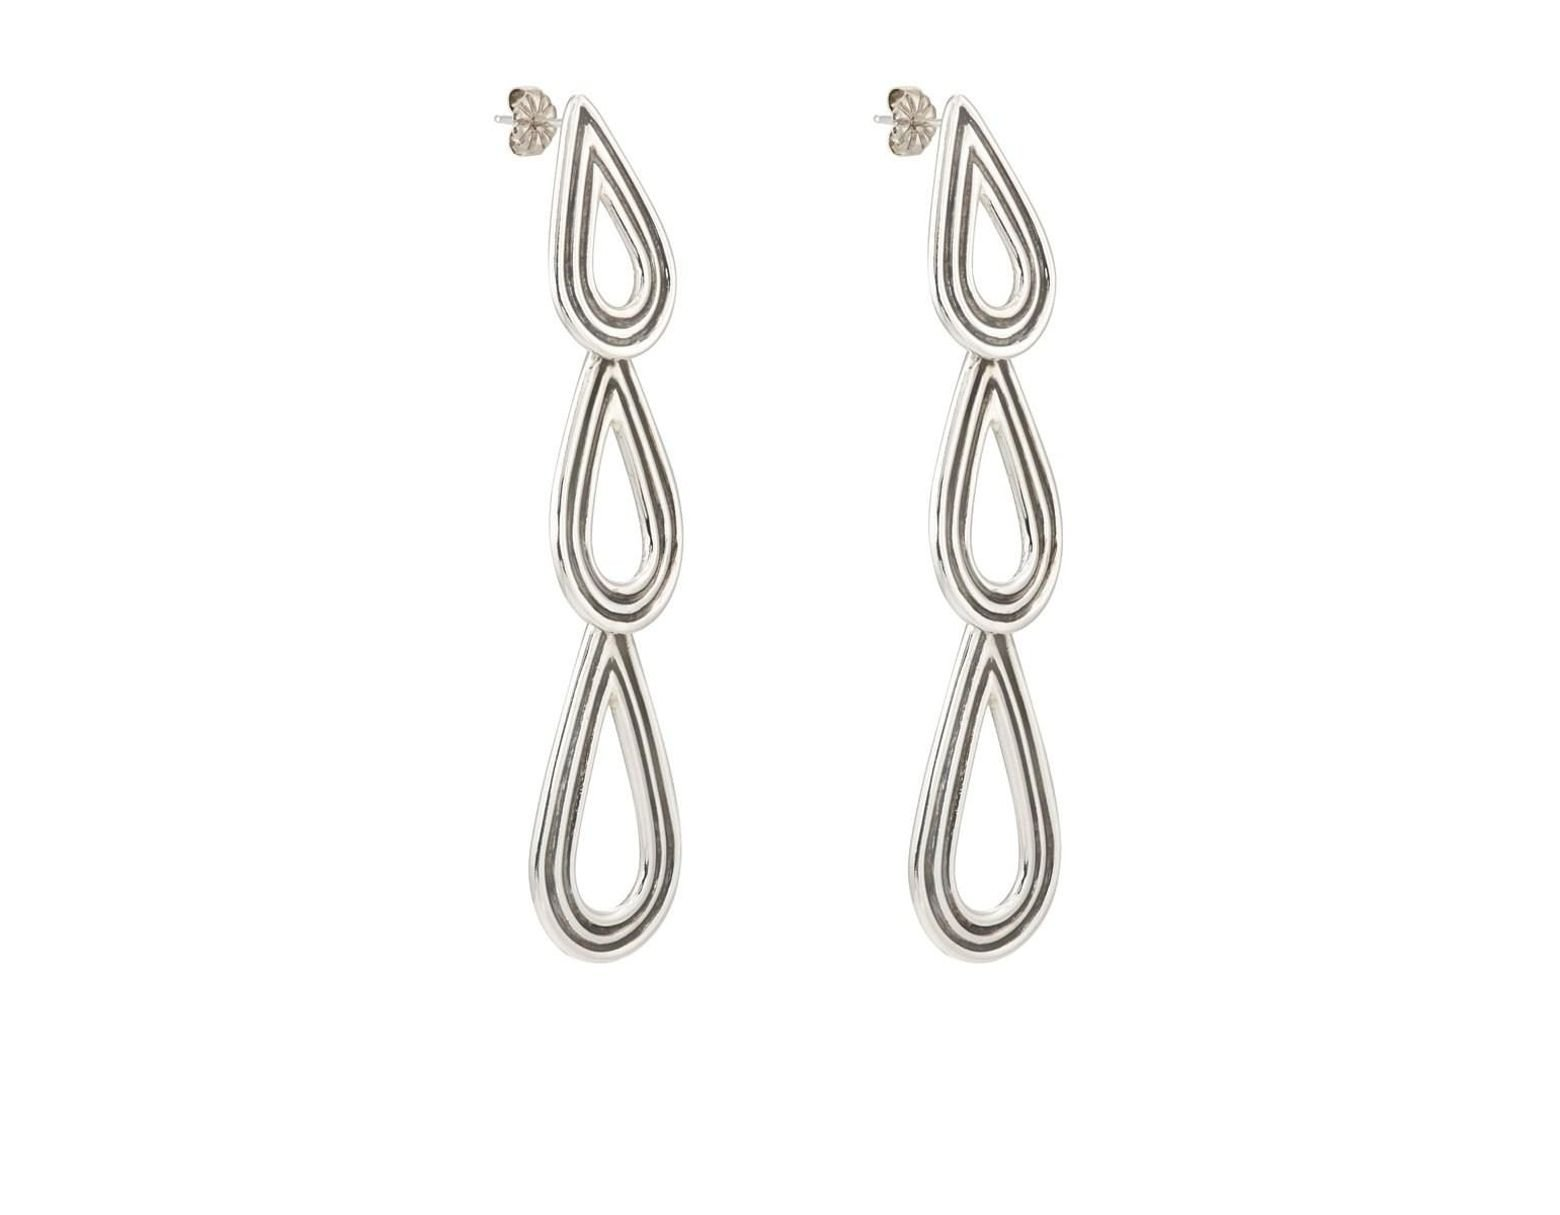 9d10ec78e Lyst - Pamela Love Three Phoebe Earrings in Metallic